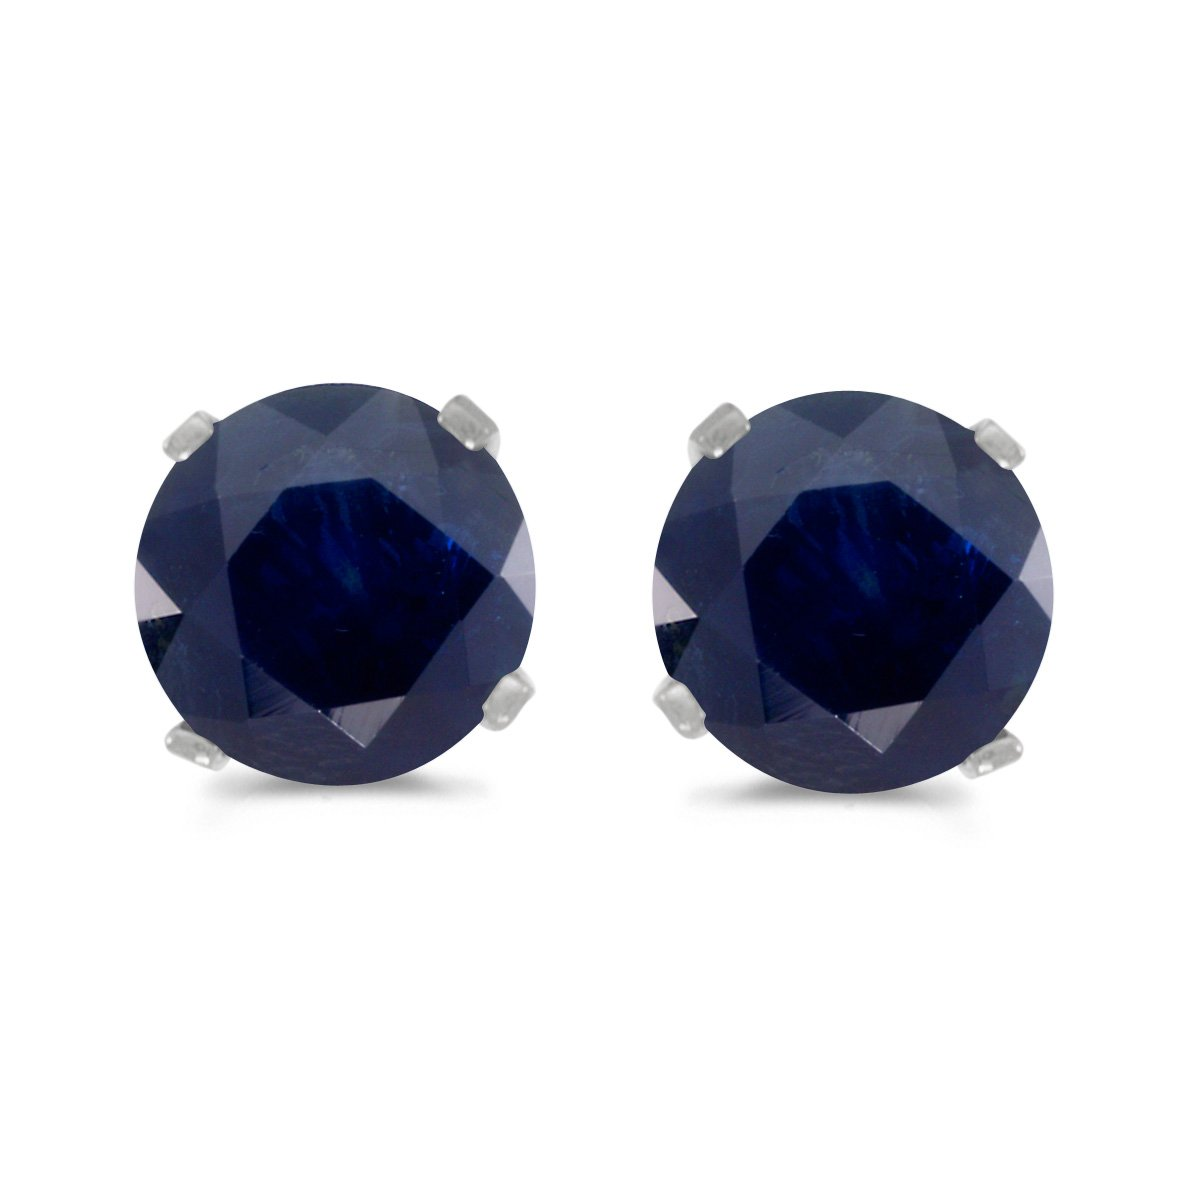 1 Carat Total Weight Natural Round Sapphire Stud Earrings Set in 14k White Gold by DIRECT-JEWELRY DON'T FORGET THE DASH